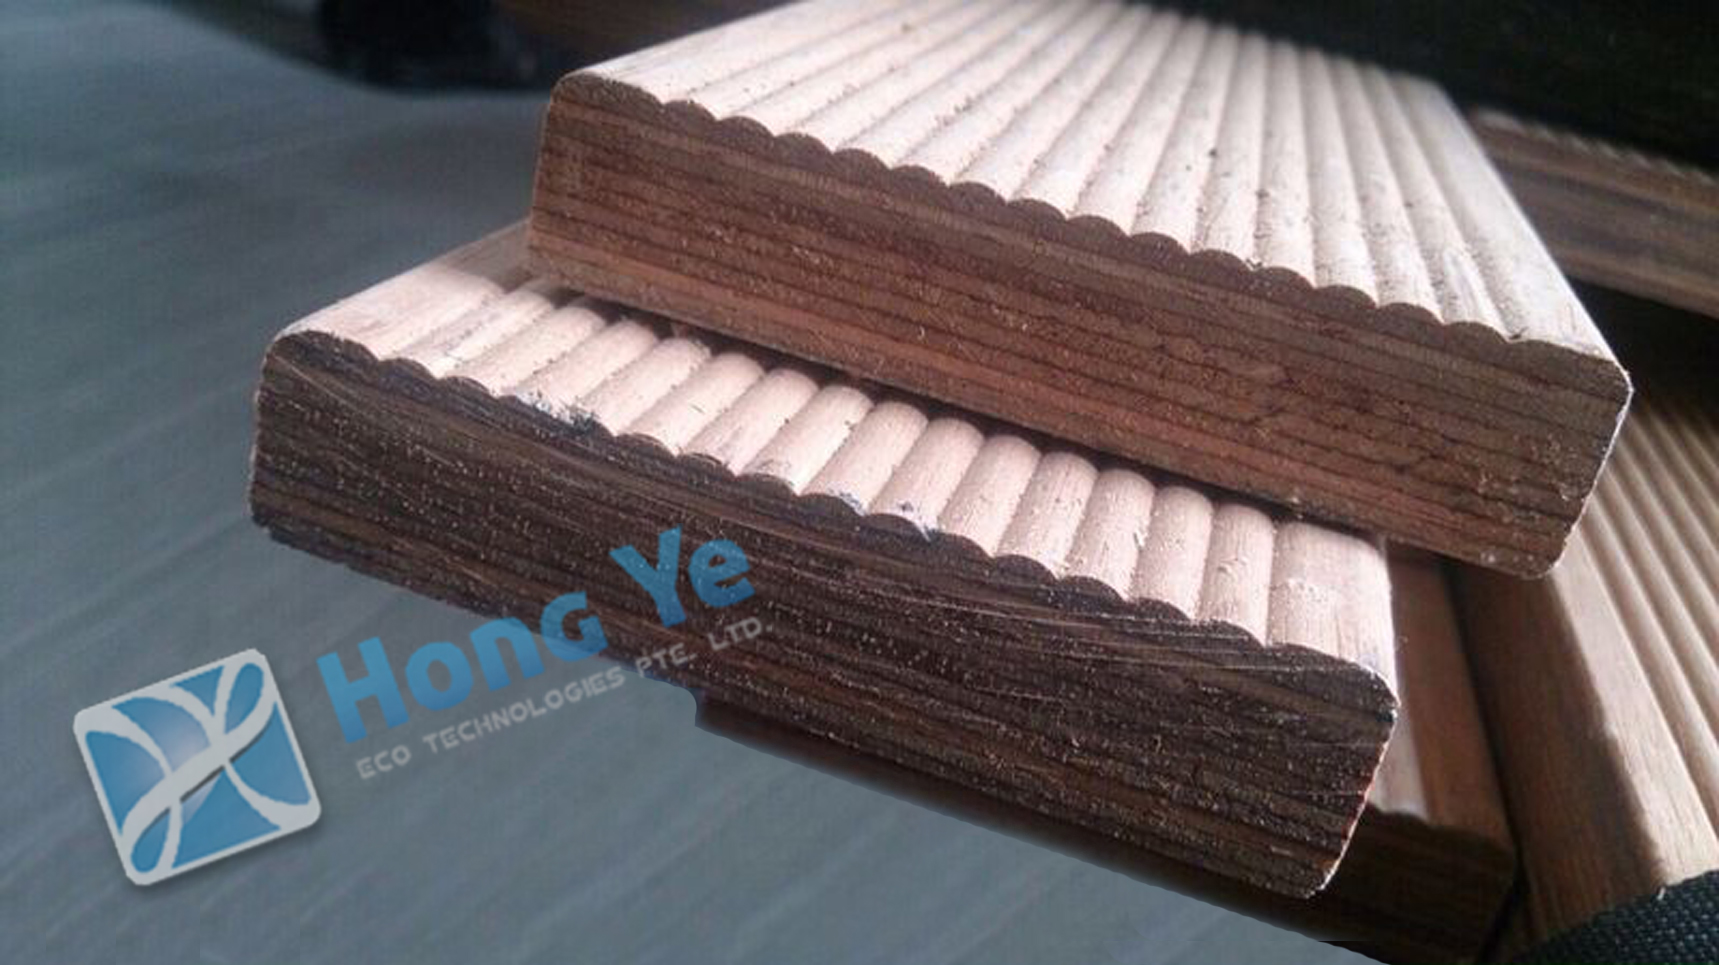 Hongye Heveatech Decking Singapore Hong Ye Eco Technologies